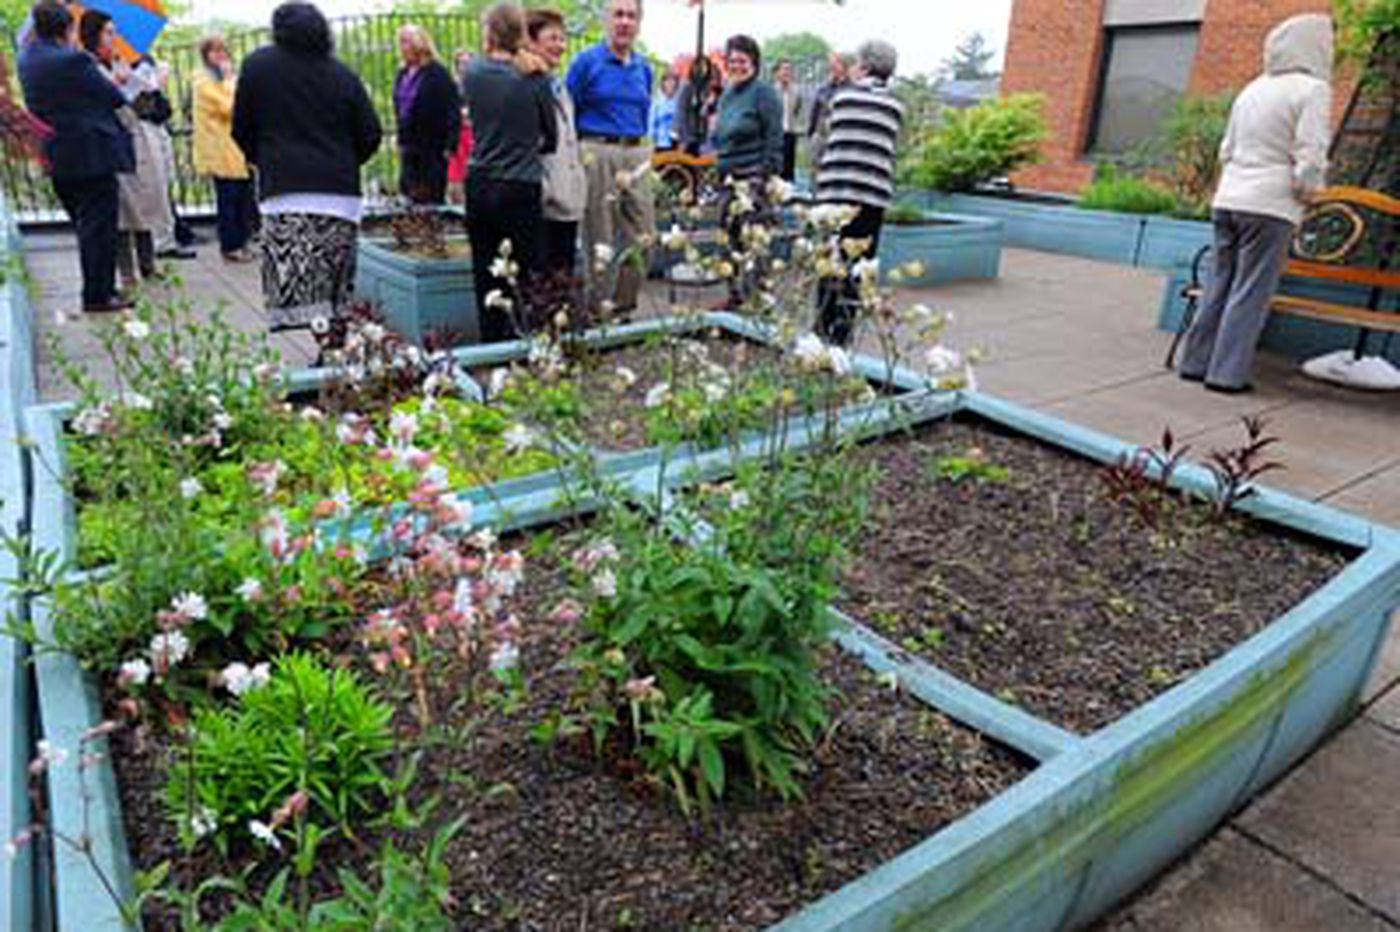 Rooftop aerie opens atop Norristown Human Services Center